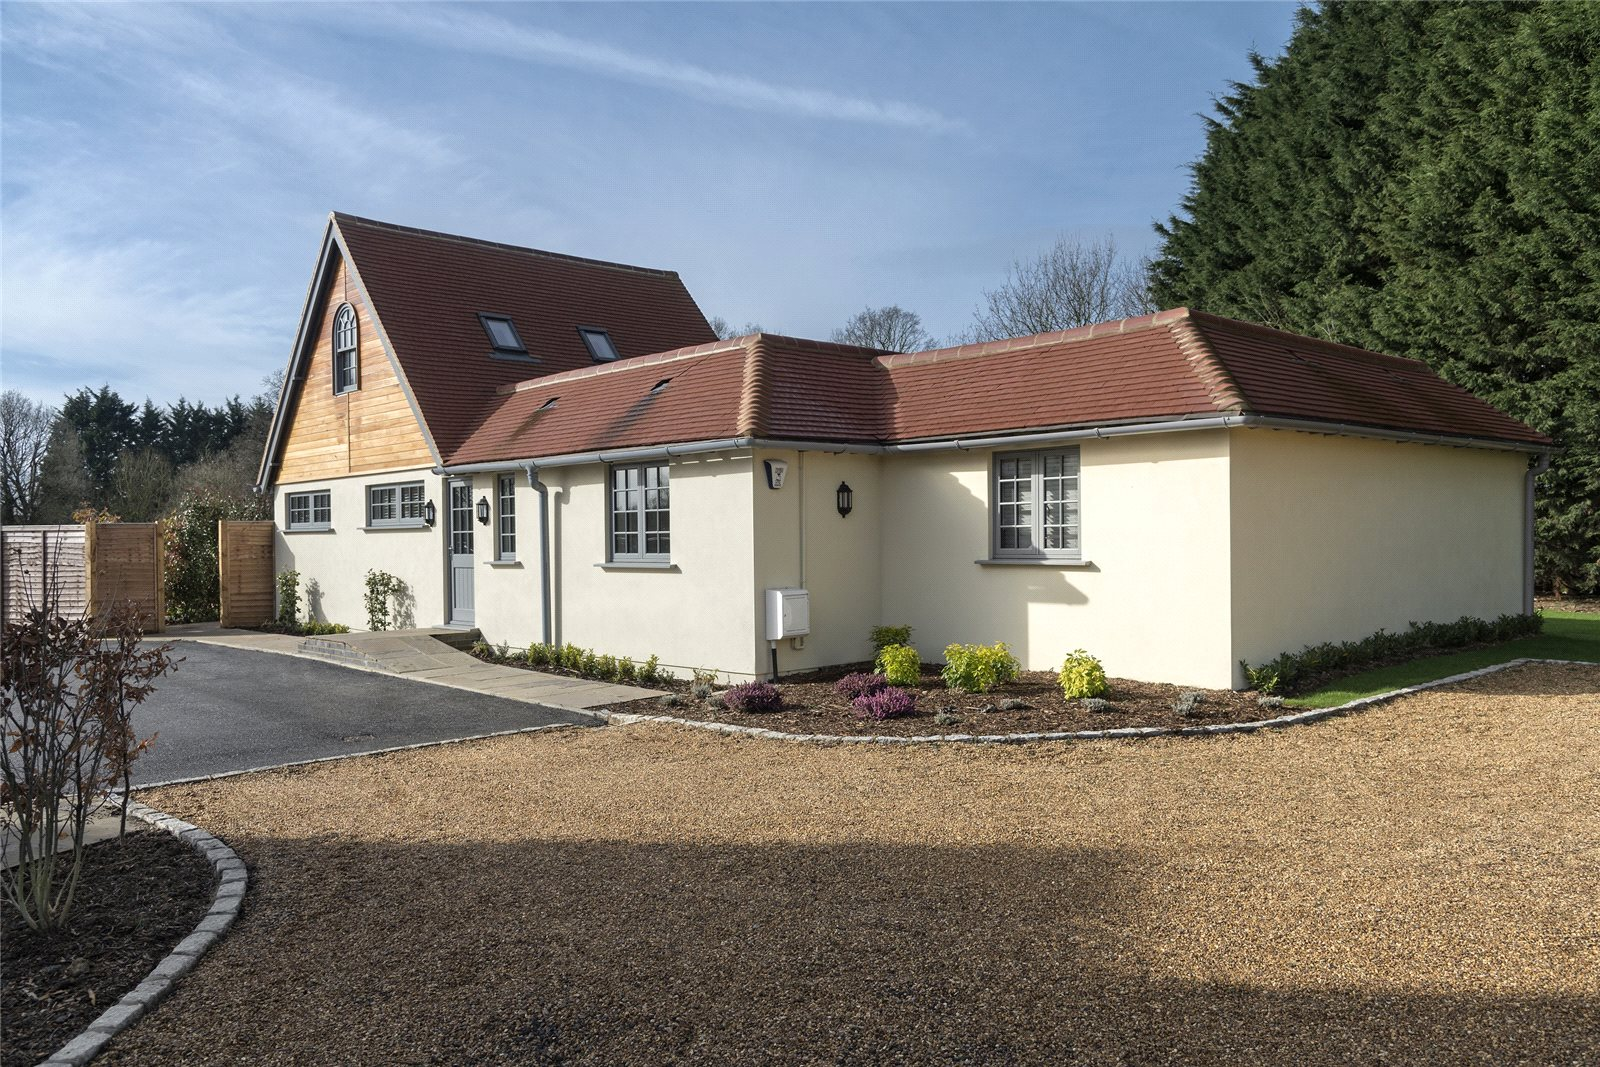 Single Family Home for Sale at Sturt Green, Holyport, Maidenhead, Berkshire, SL6 Maidenhead, England